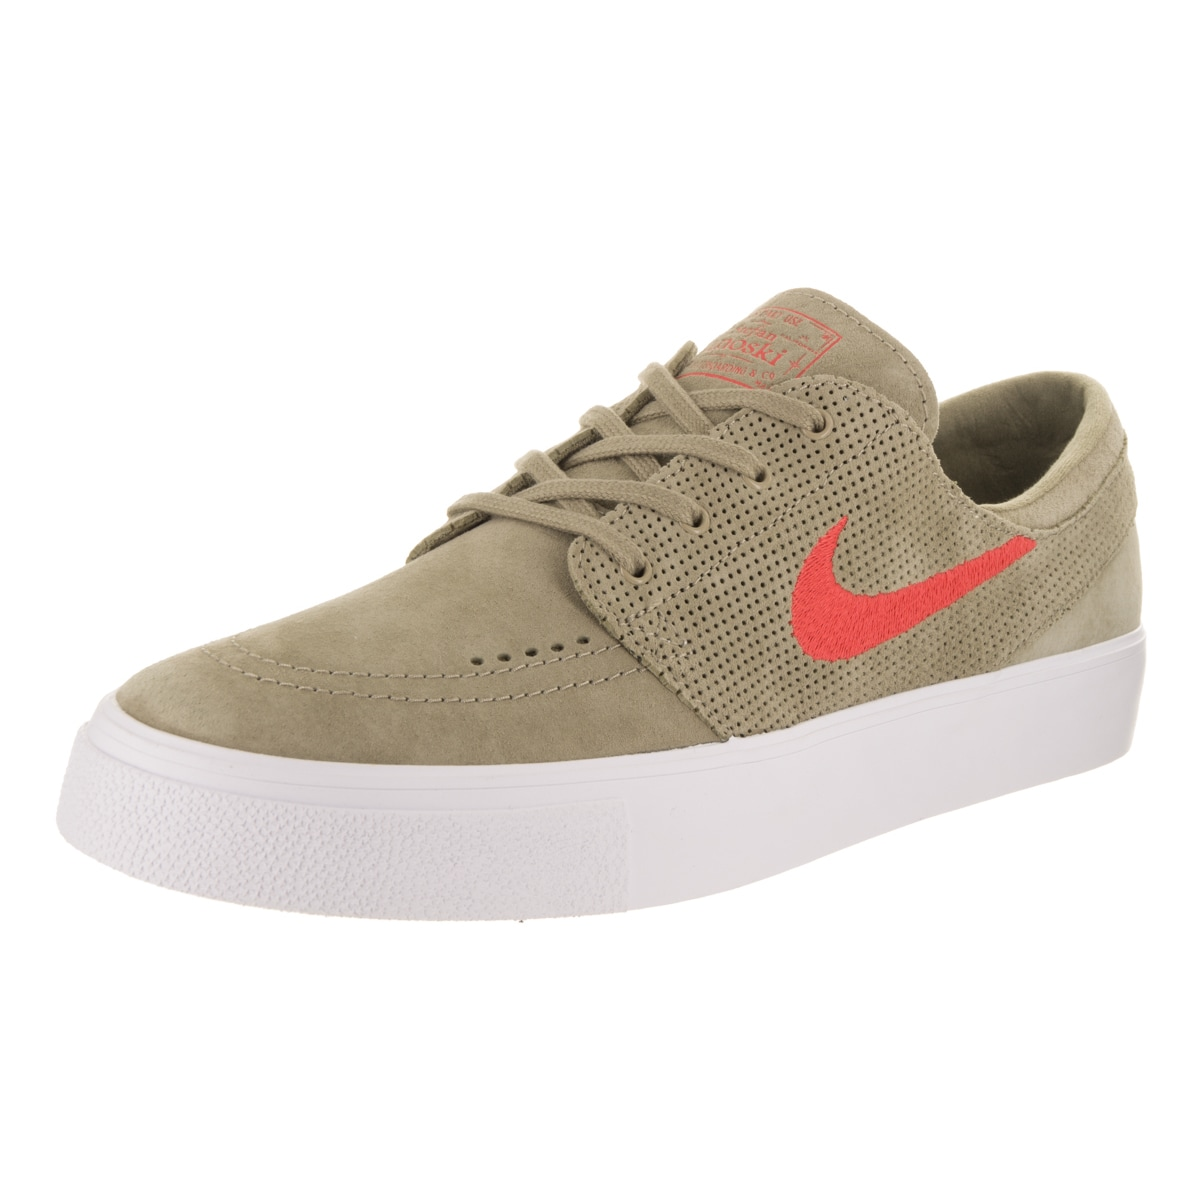 info for eb52c 0c1d4 Shop Nike Men s SB Zoom Janoski HT Beige Suede Skate Shoes - Free Shipping  Today - Overstock.com - 15924635